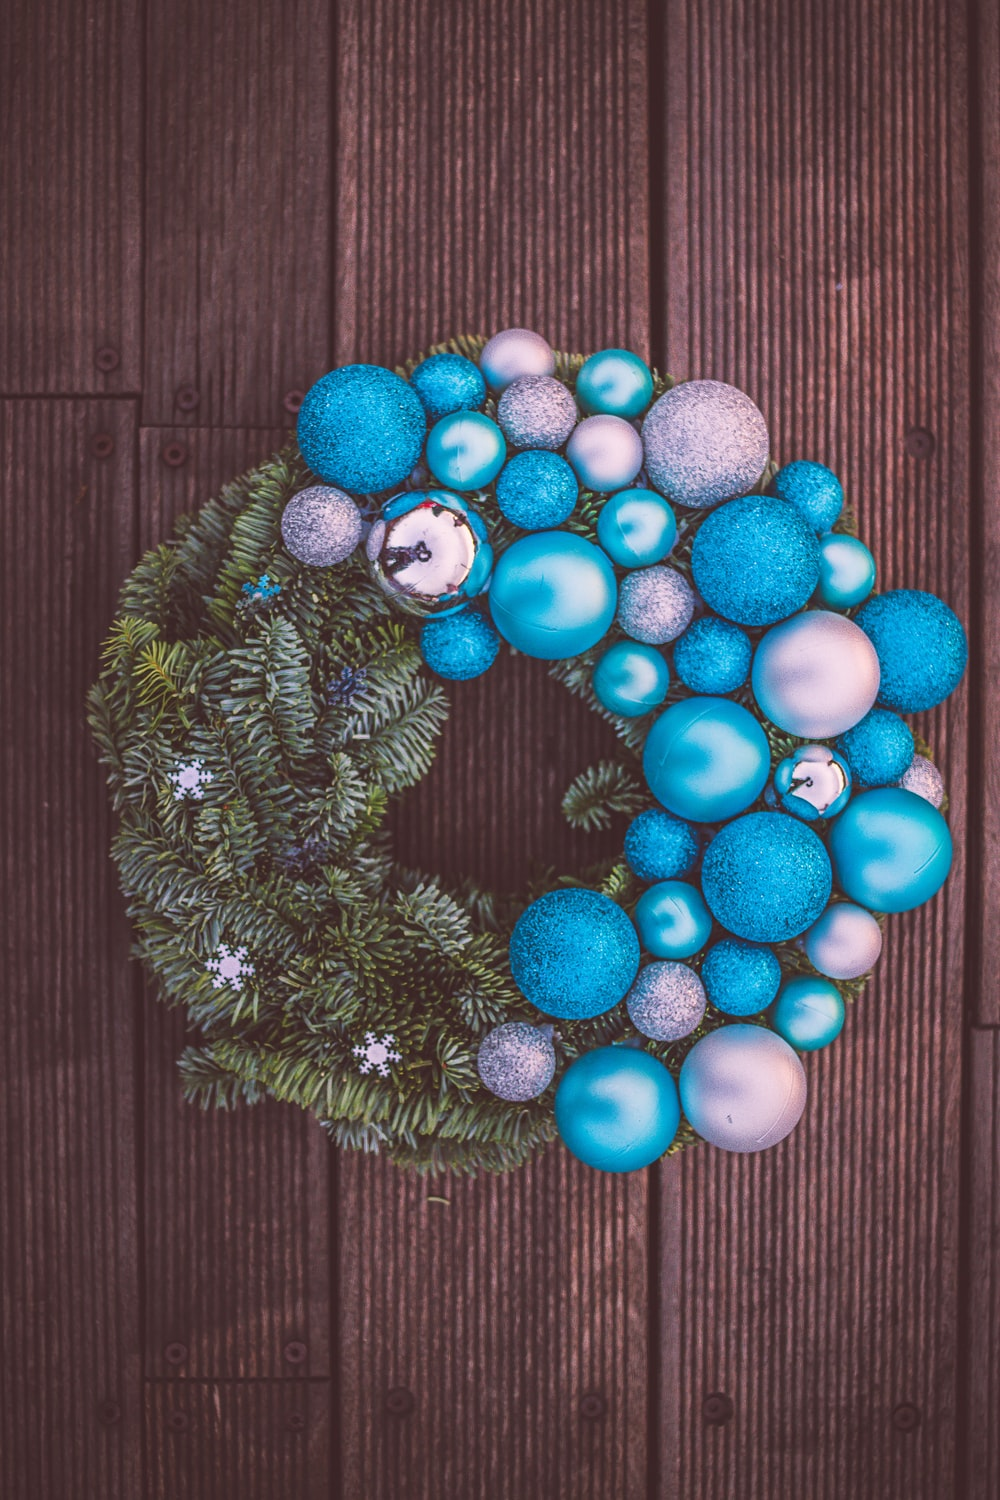 red and blue baubles on green pine tree